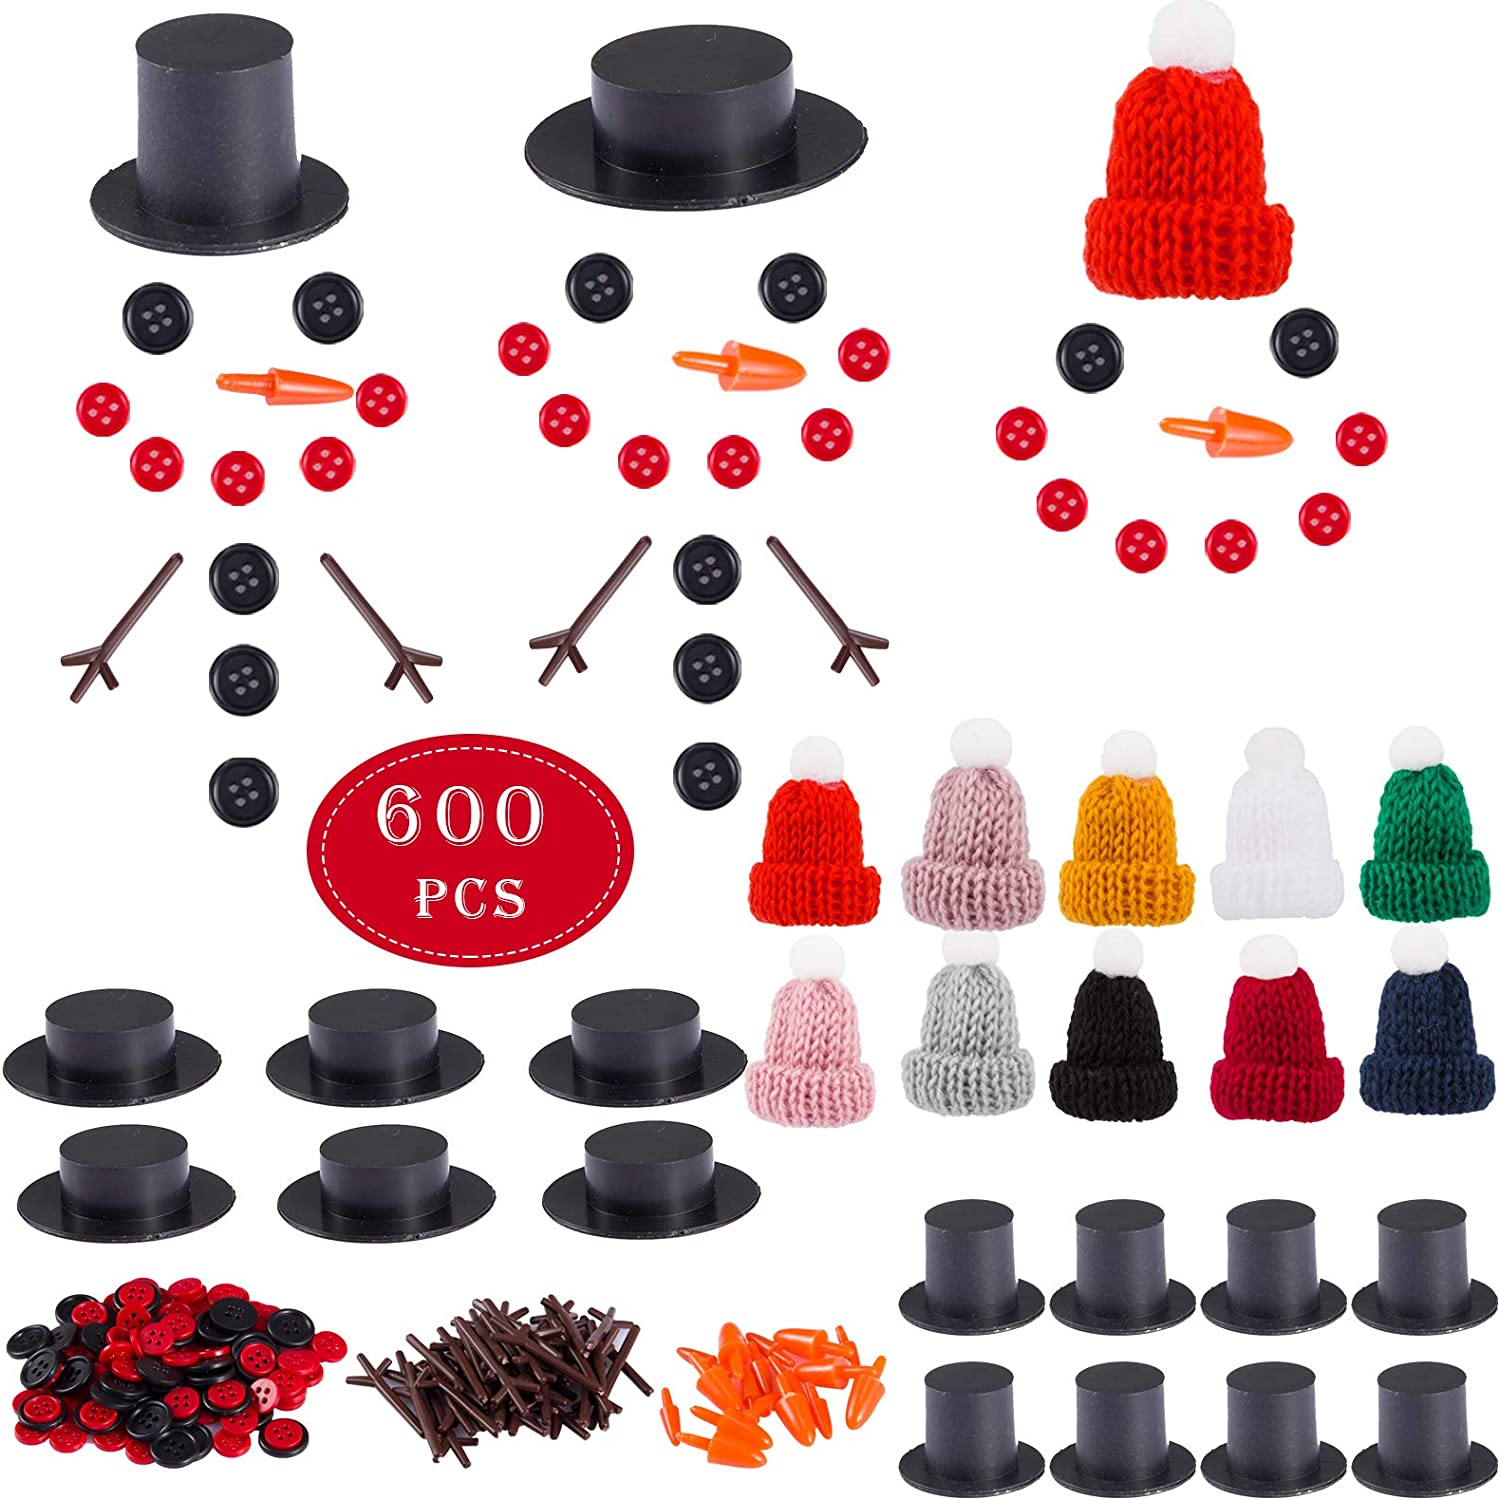 20 Mini Black Magician Hats 120 Tiny Buttons and 40 Trigeminal Hand for Christmas Party Supplies 20 Carrot Noses Buttons Marrywindix 200 Pieces Christmas Snowman DIY Craft Buttons Kit